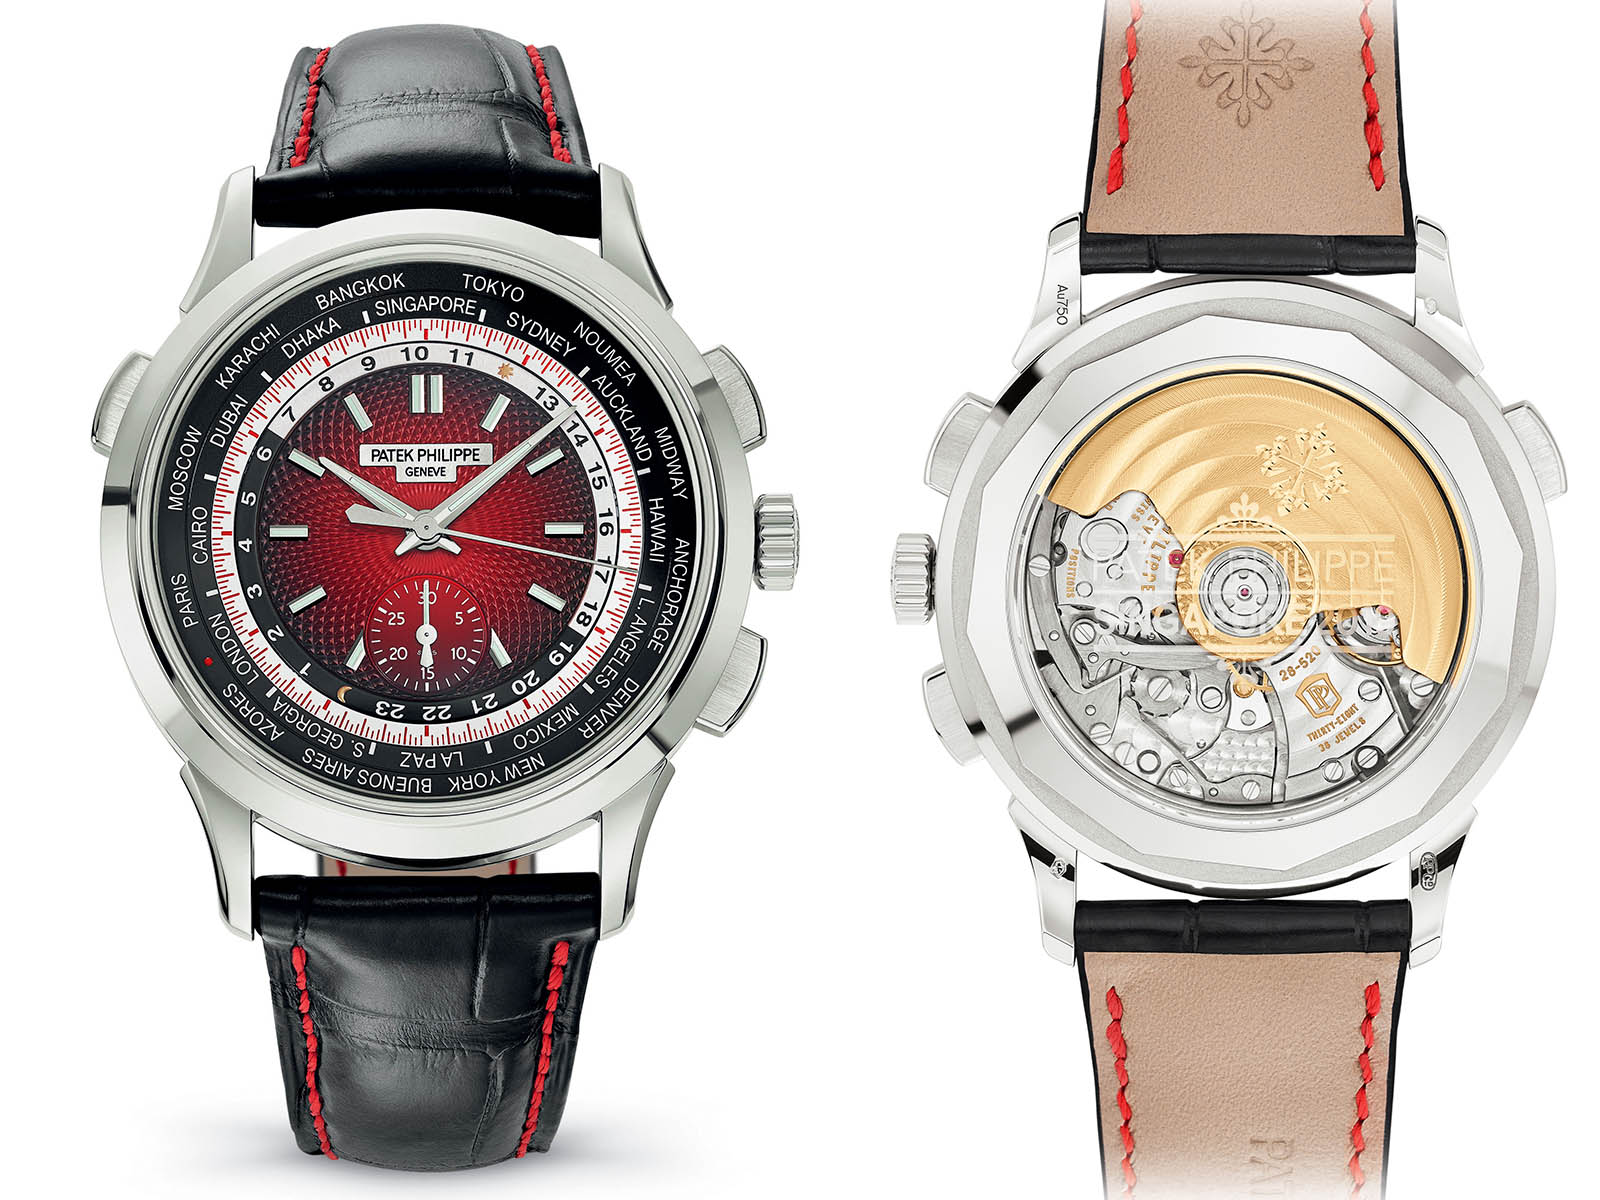 5930g-011-patek-philippe-world-time-chronograph-2.jpg